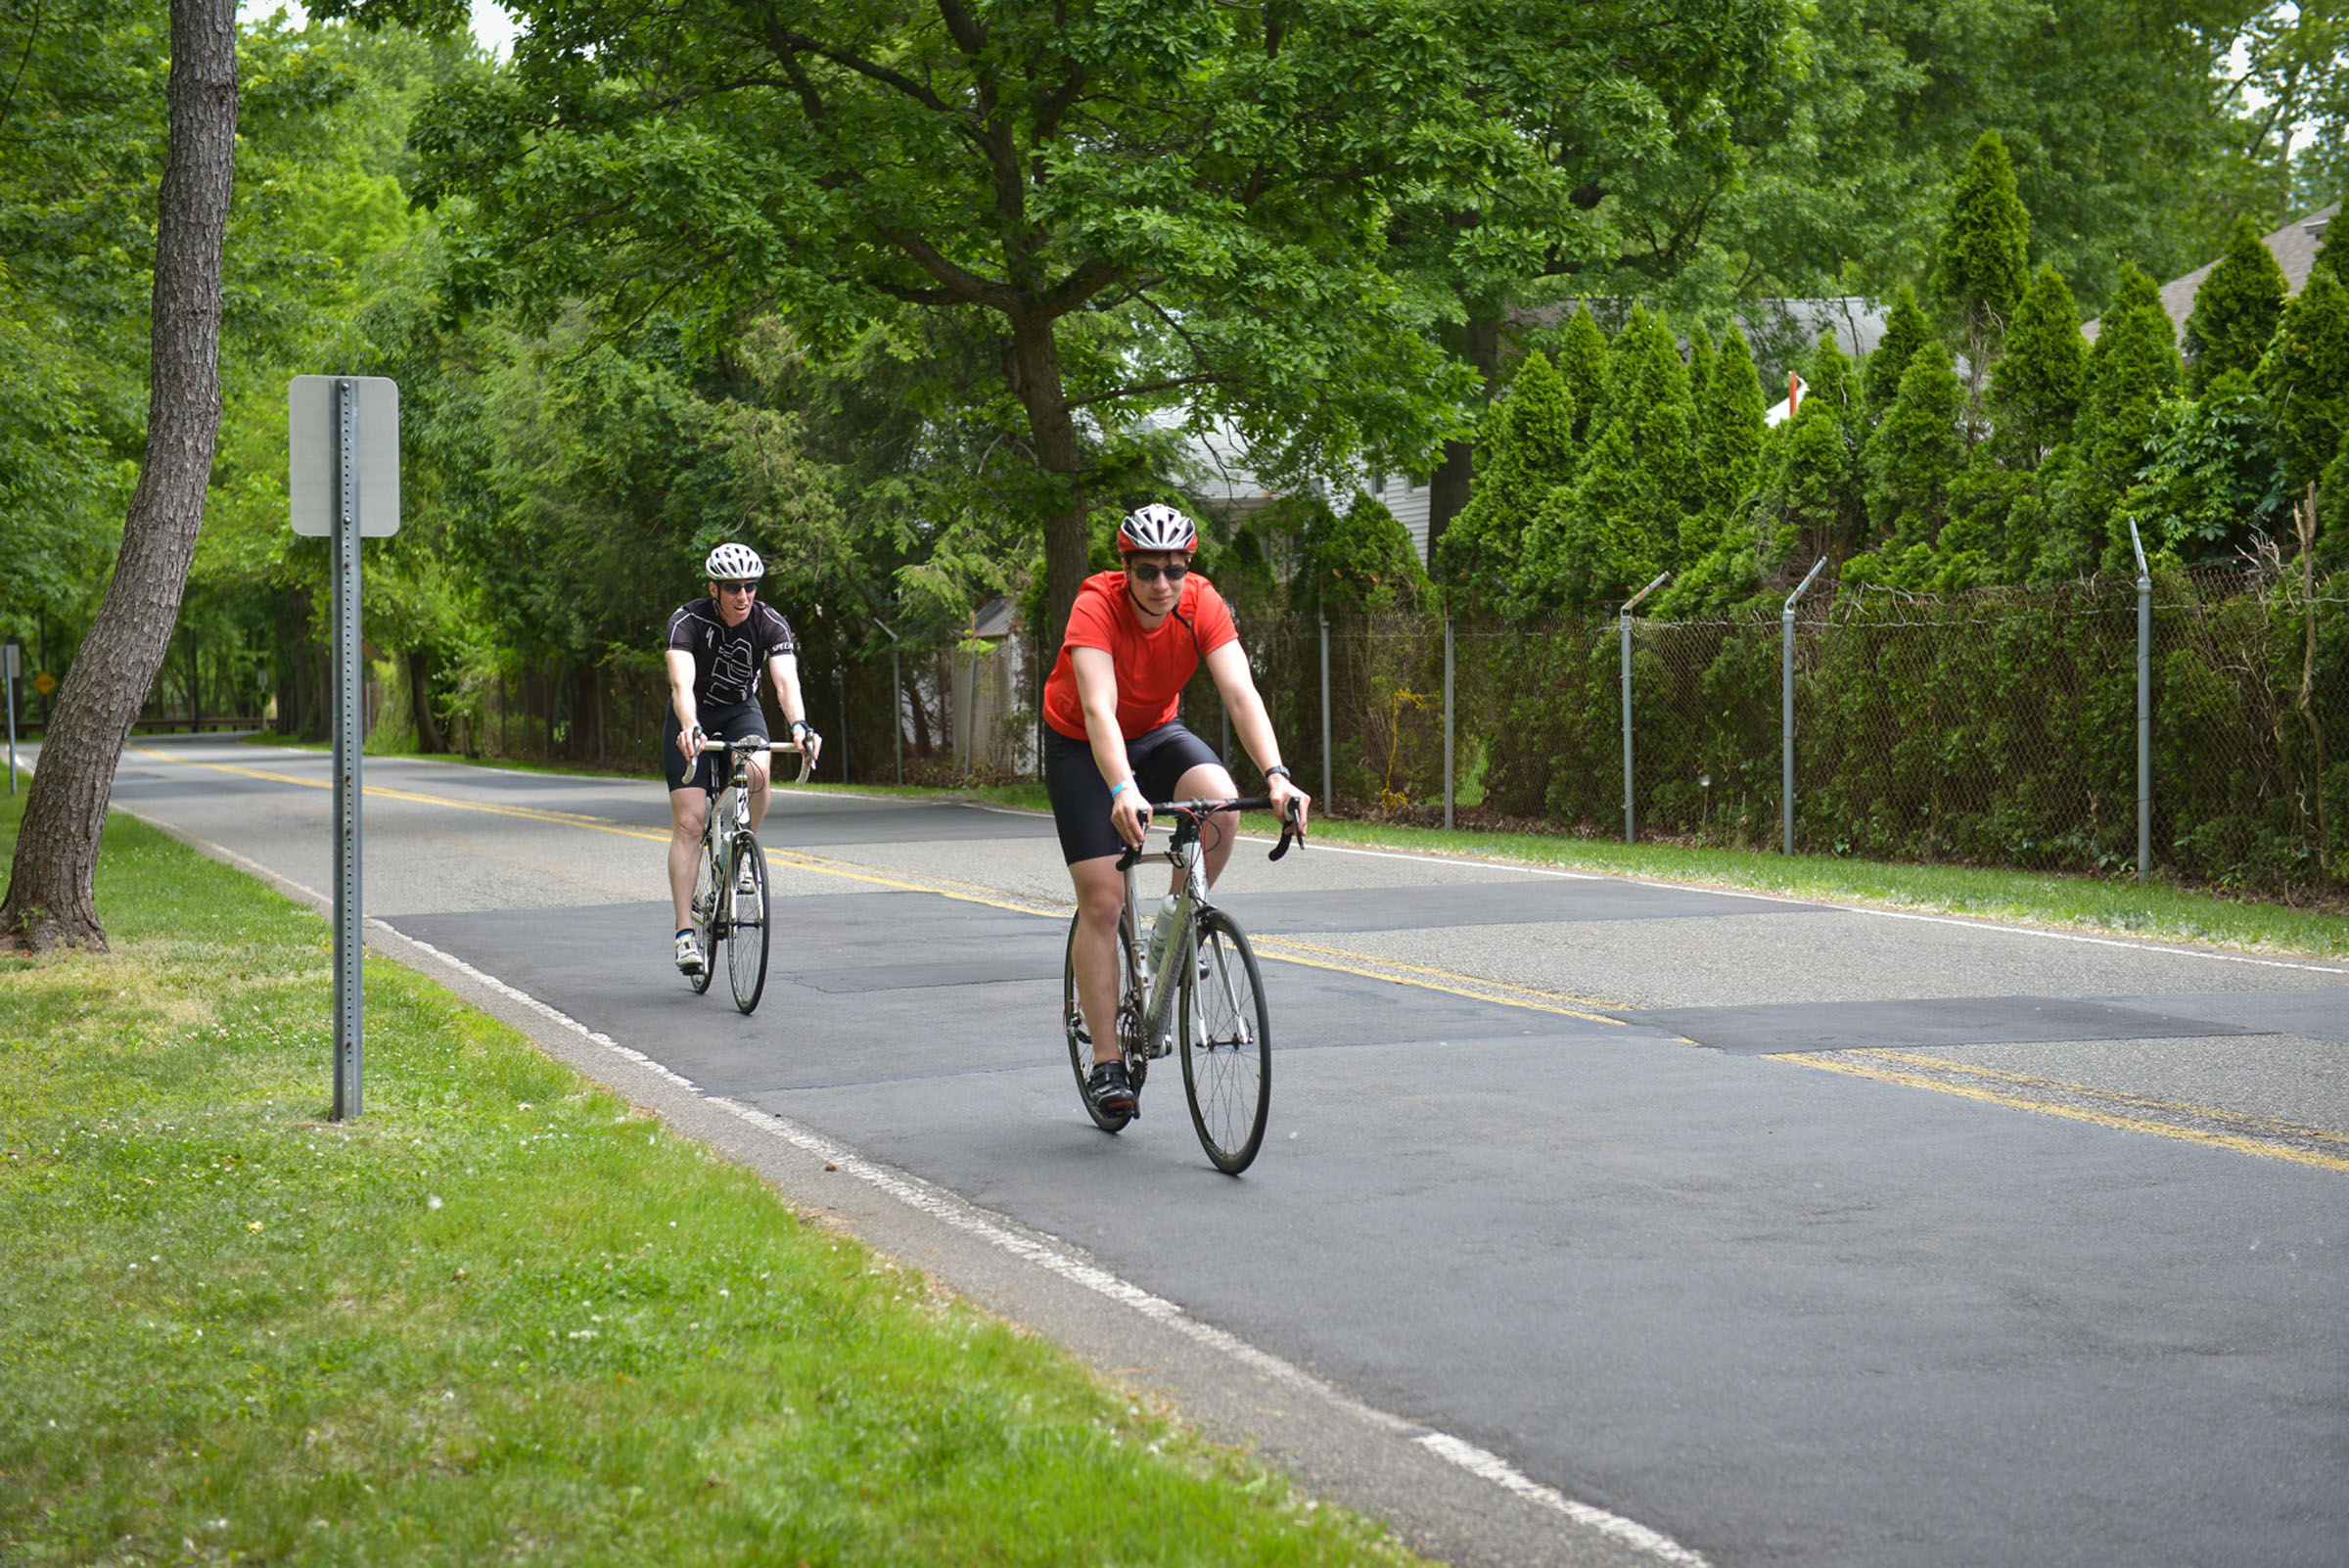 2017-06-04 GTD4A Charity Bike Ride - BCC - Paramus NJ-2400.jpg